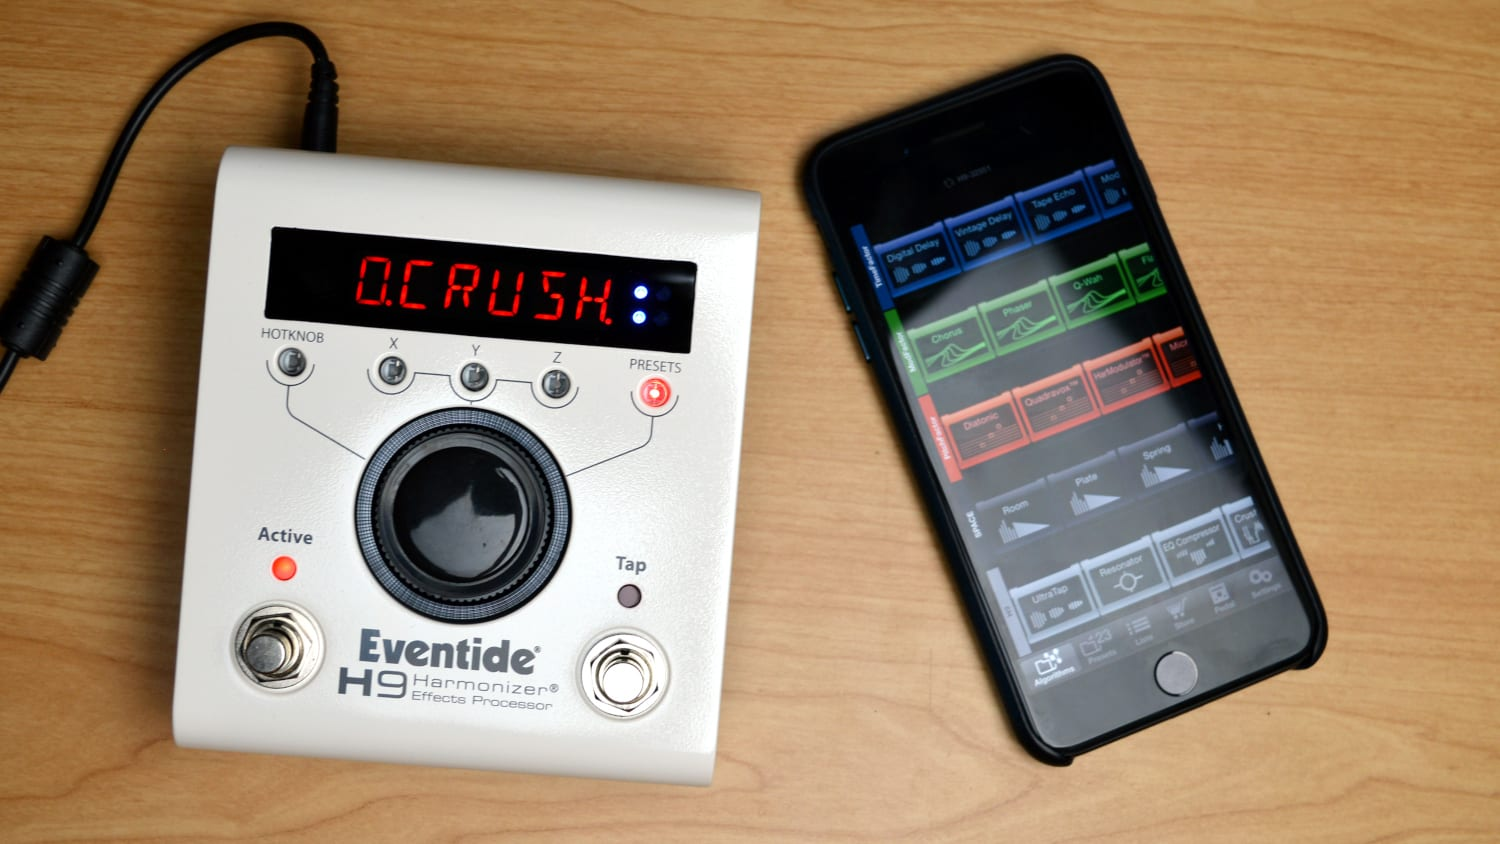 eventide h9 effects processor review all things gear. Black Bedroom Furniture Sets. Home Design Ideas